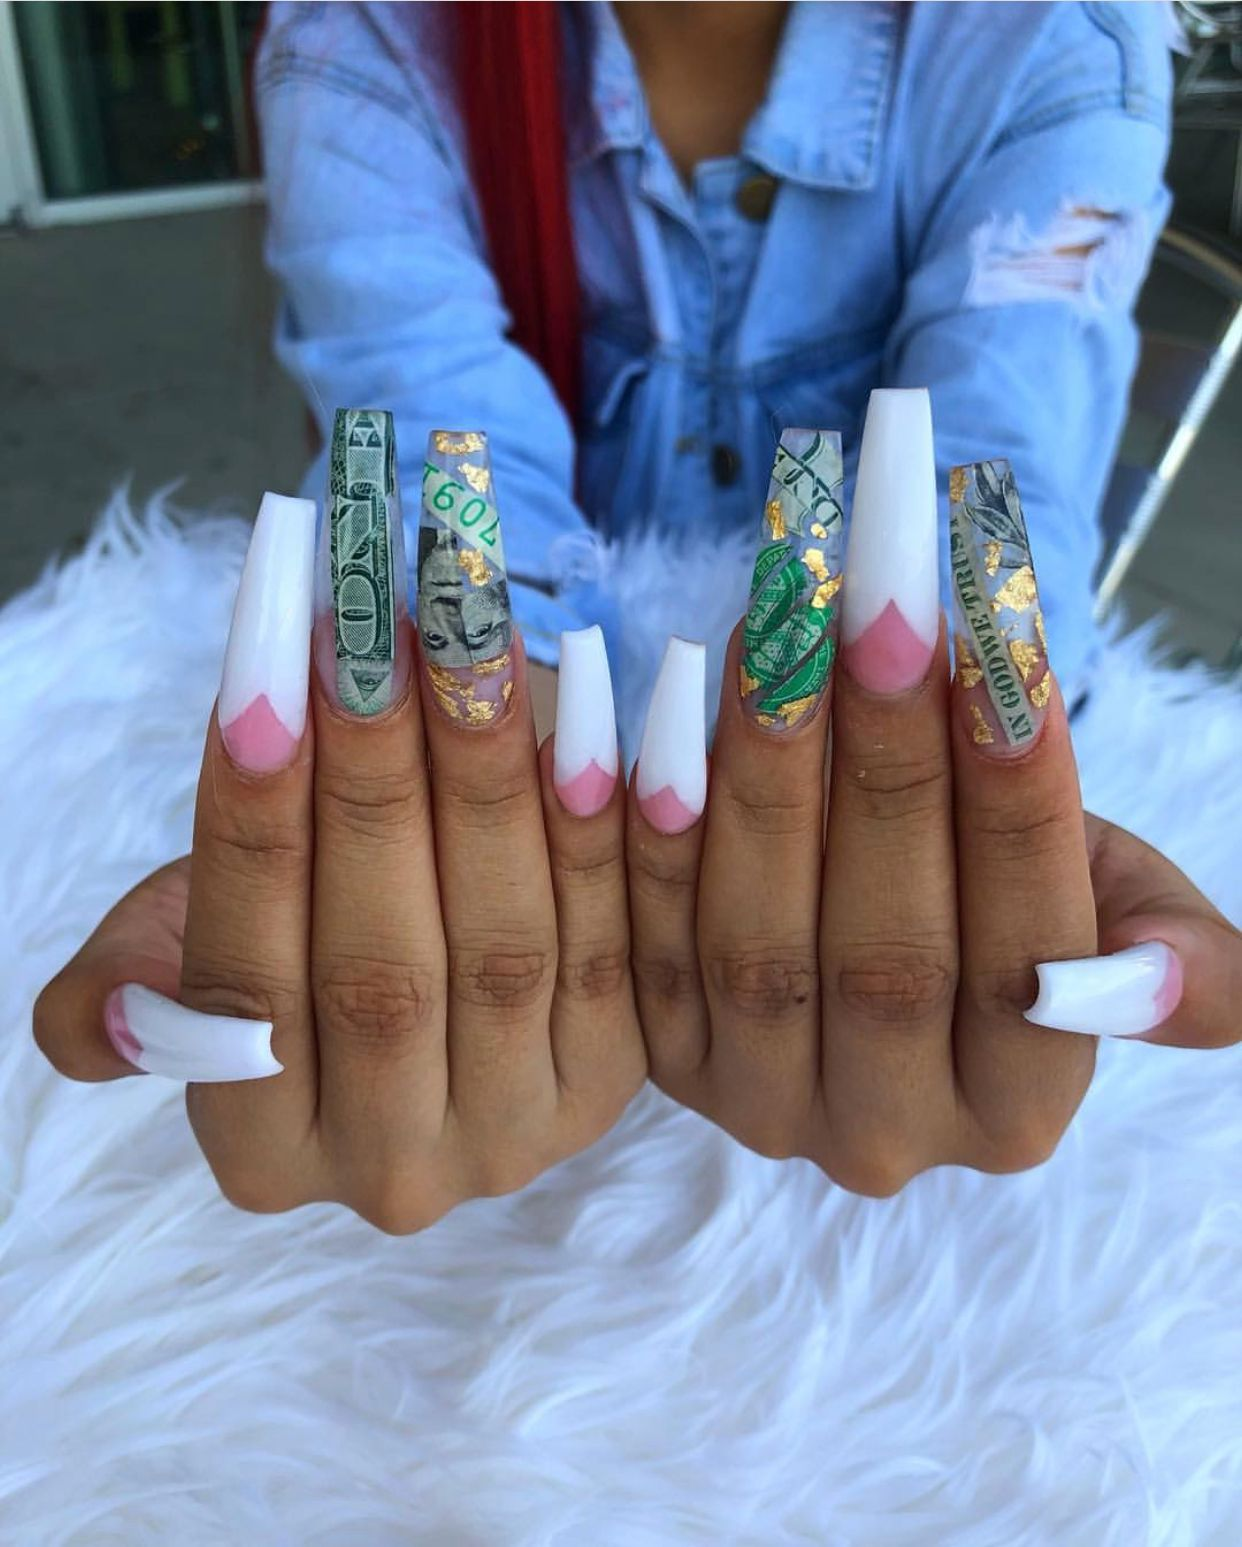 Pin On Nail Art Designs And Ideas Gallery